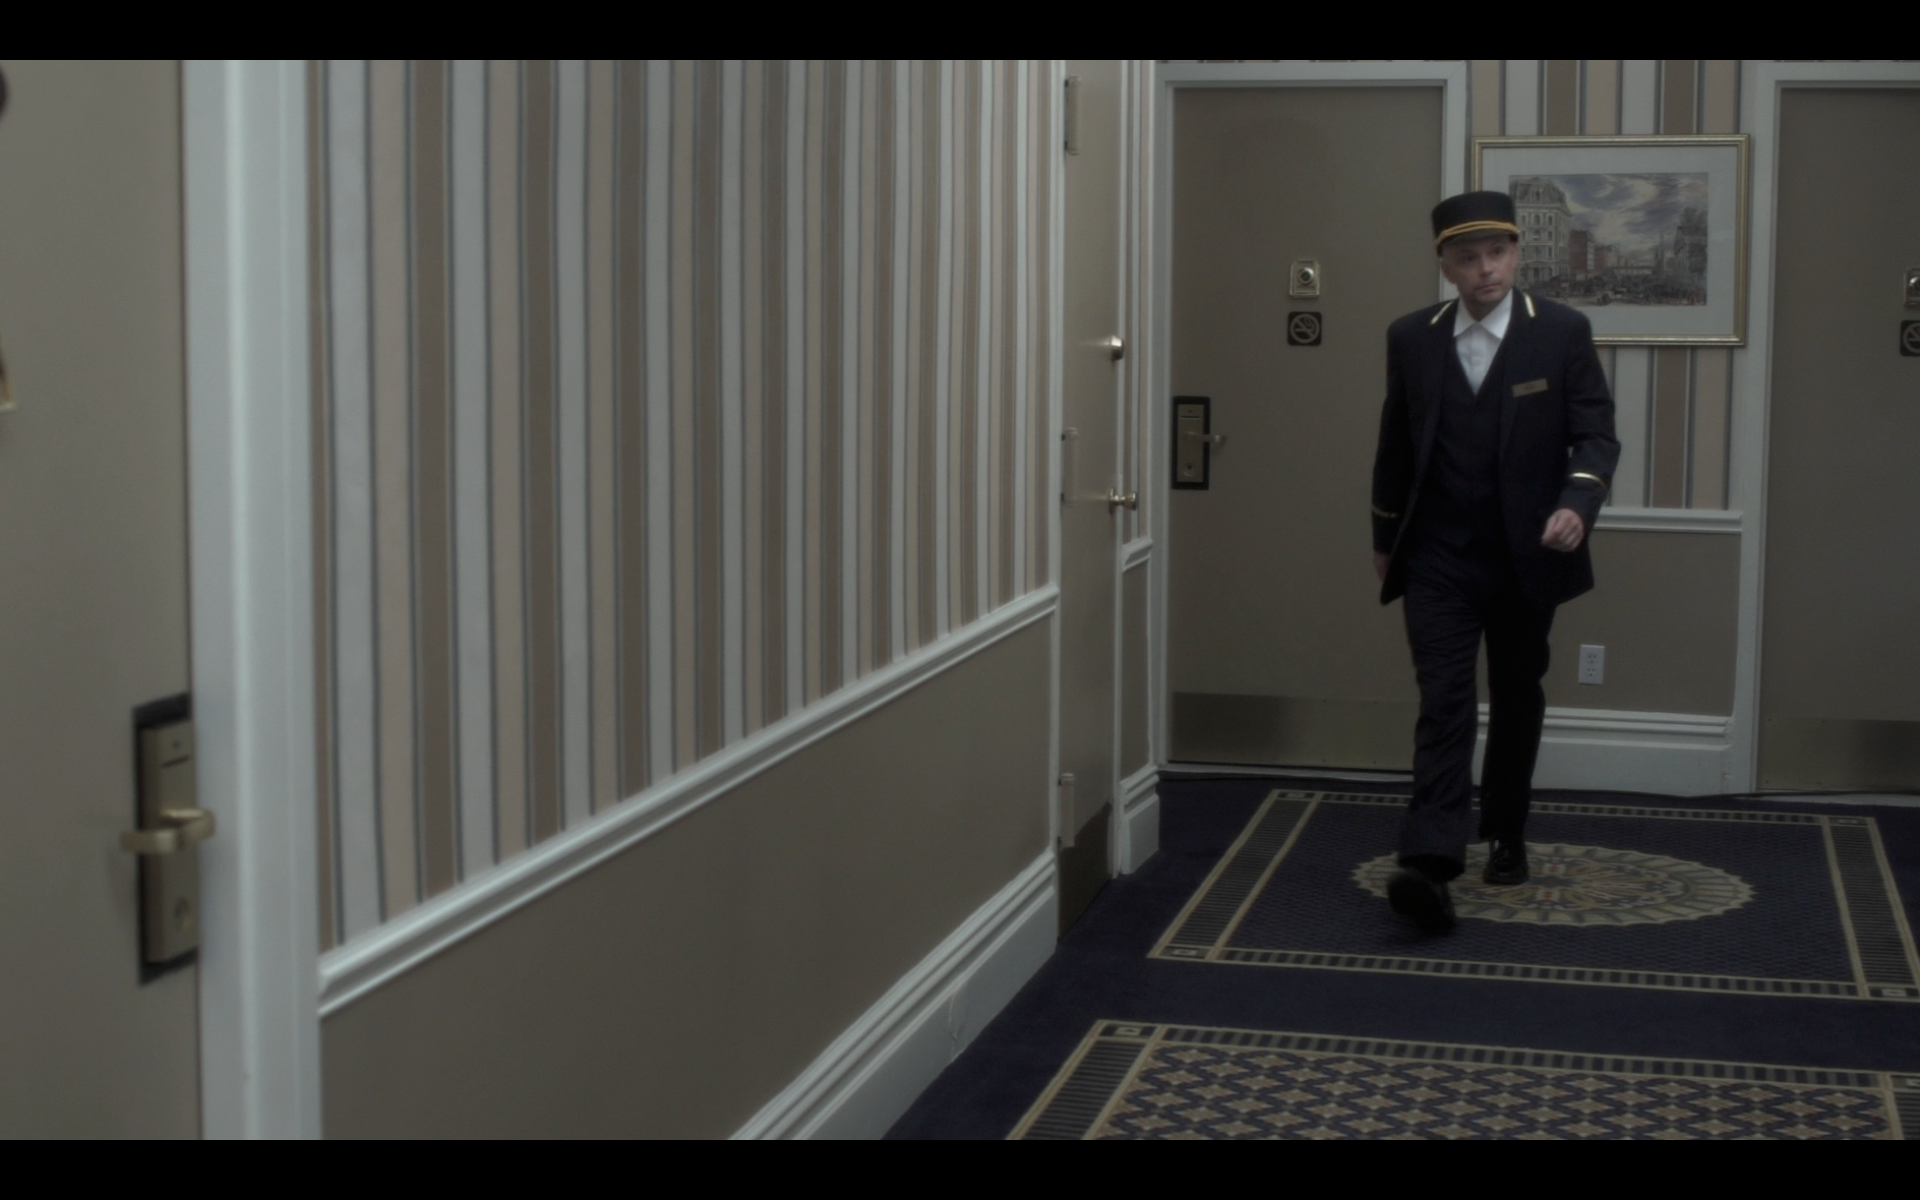 The_Doorman_production_still_3.jpg